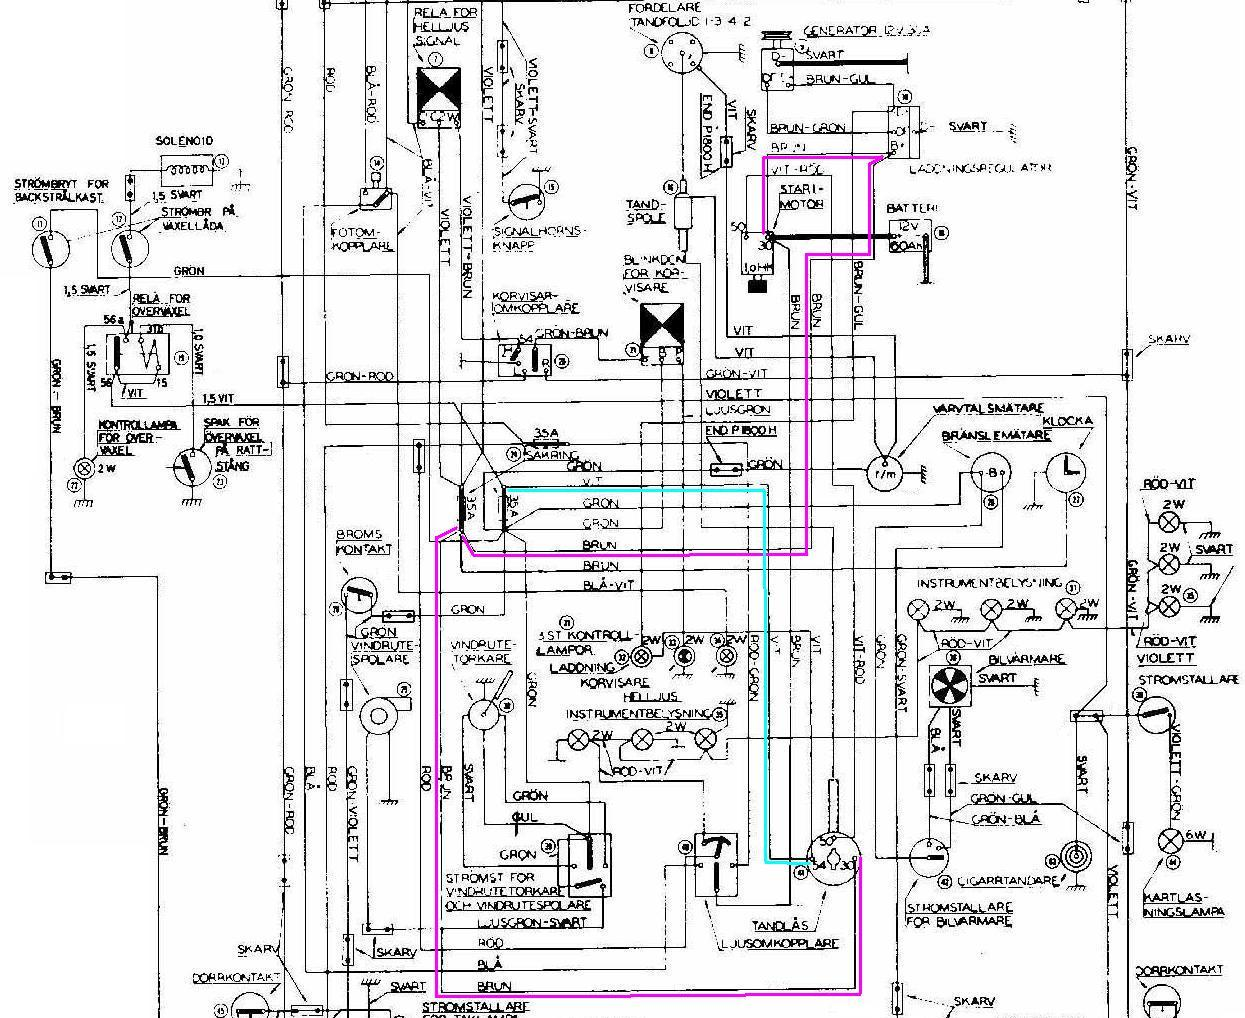 Volvo Electrical Wiring Diagrams Simple Guide About Diagram Xc70 Box Rh Cad Fds Co Uk Penta